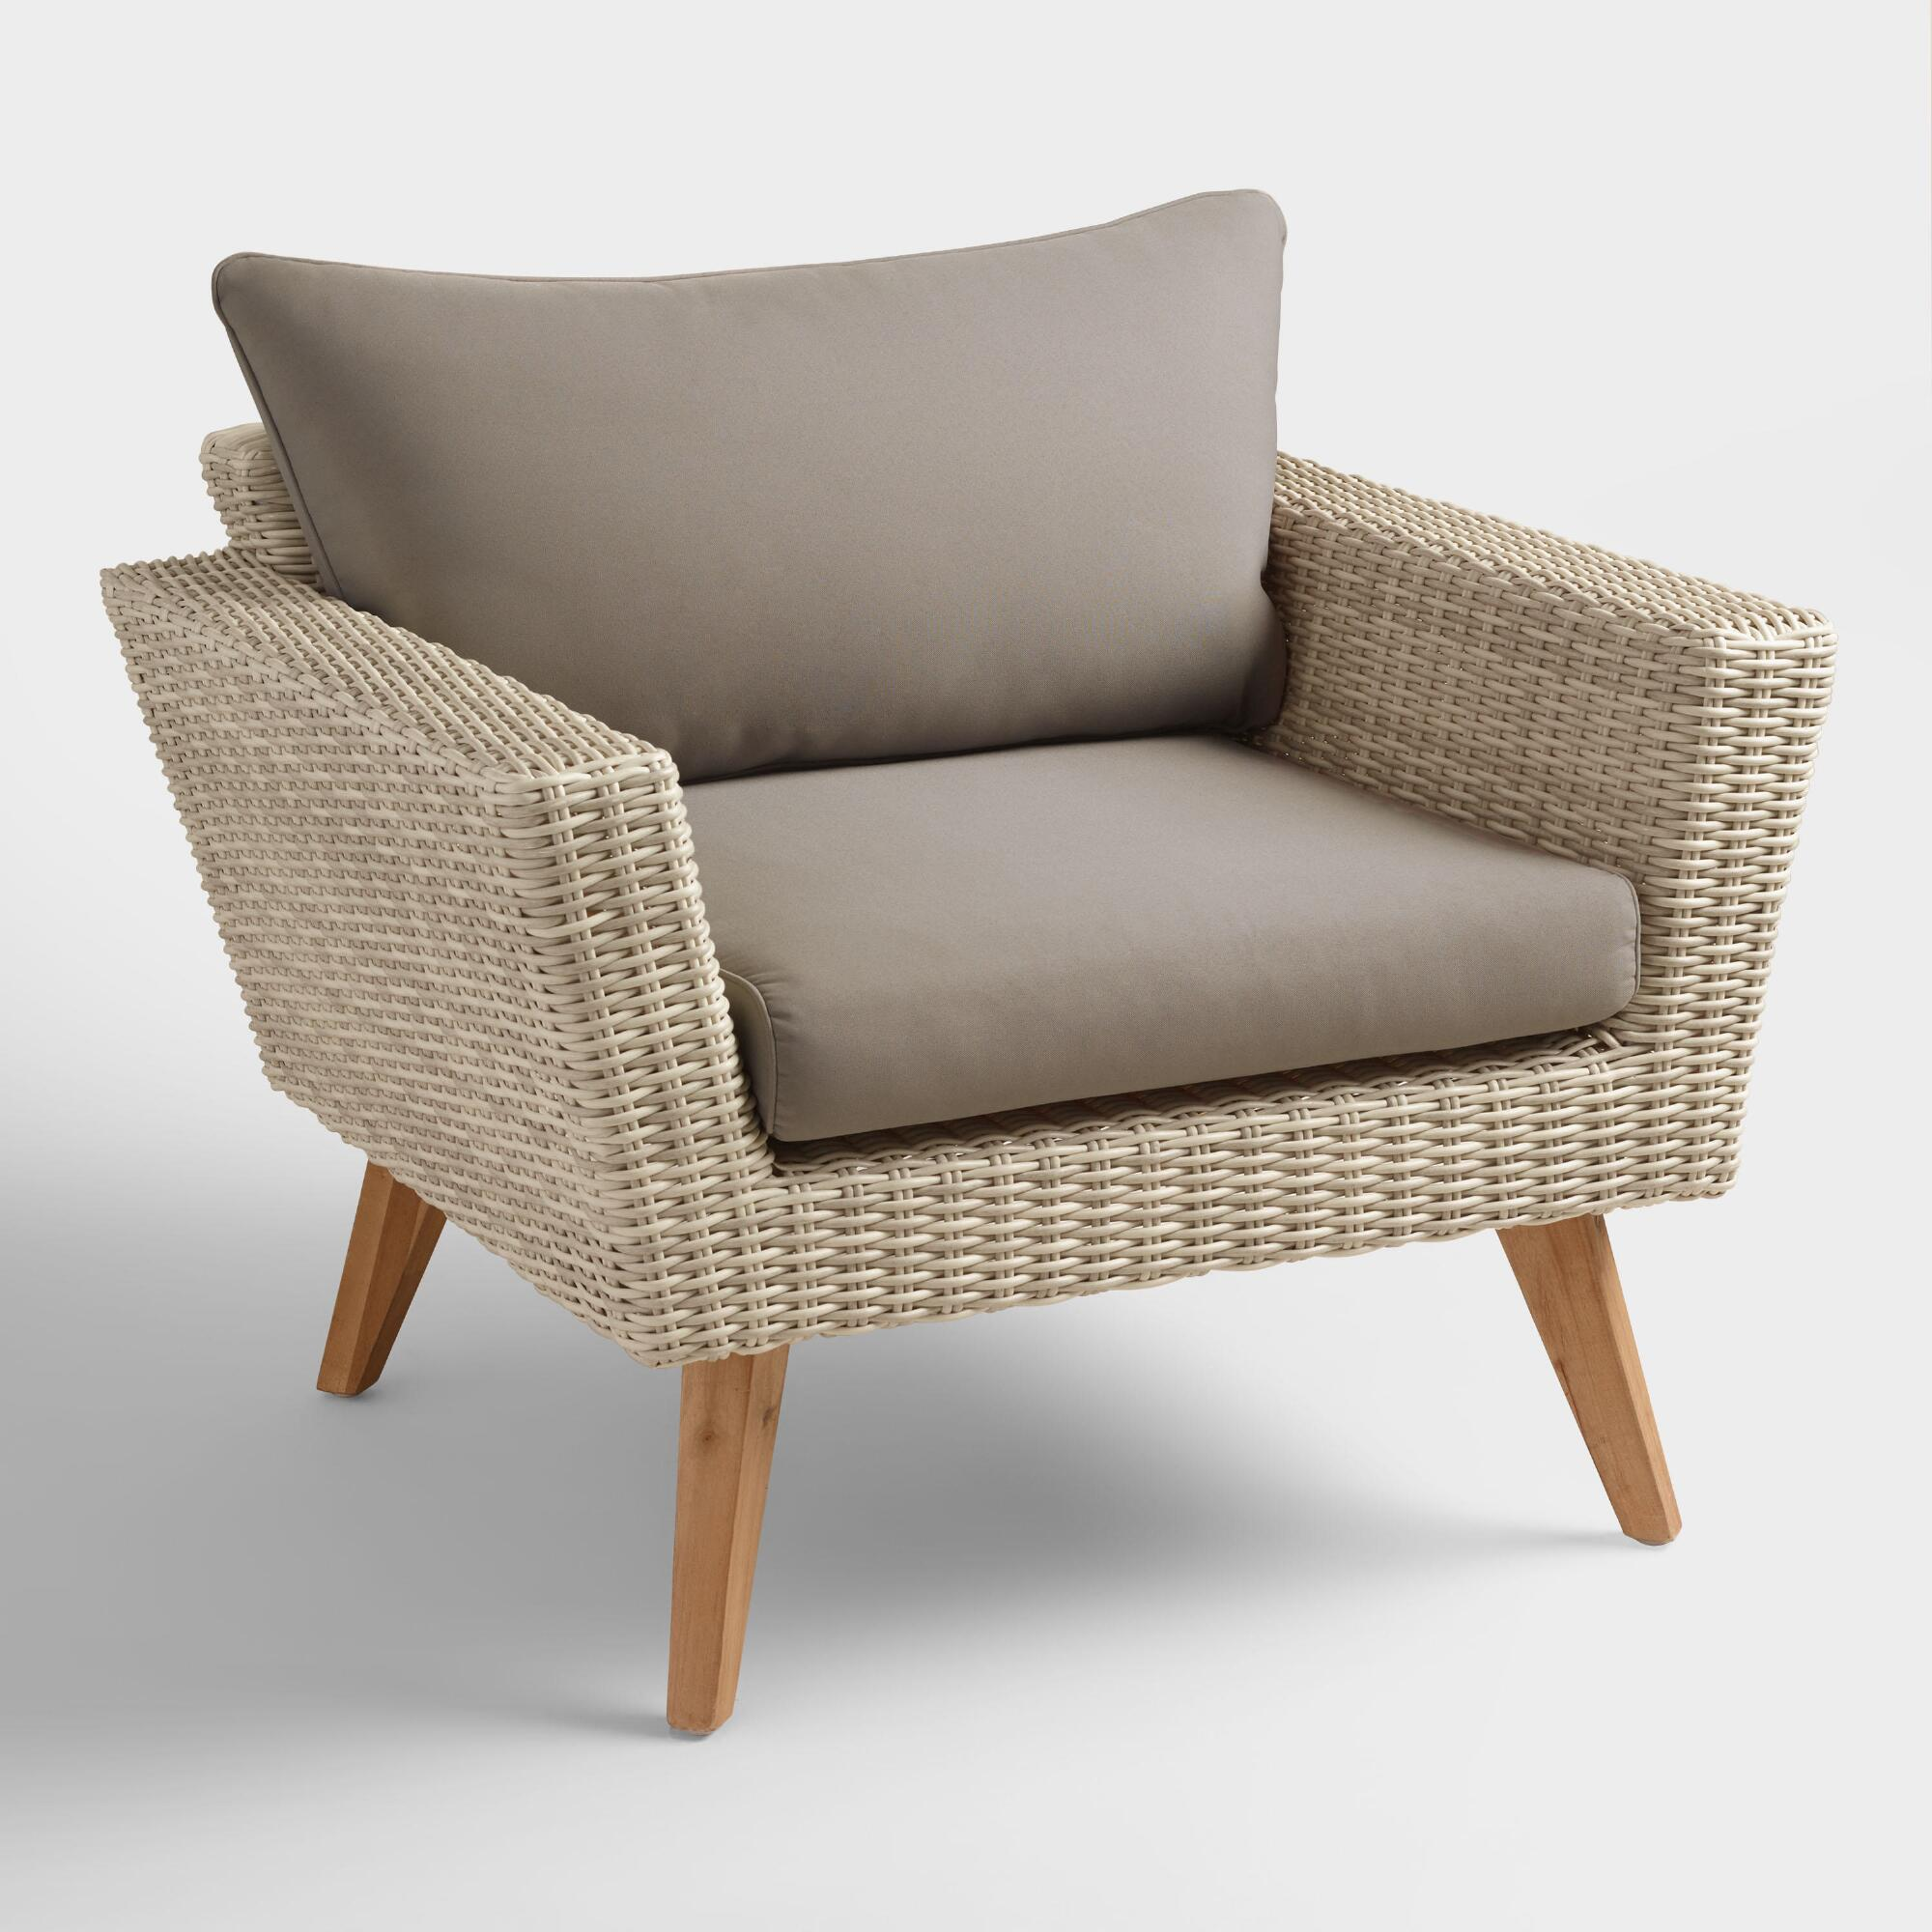 Furniture World Market: All Weather Wicker Marina Del Ray Occasional Chair